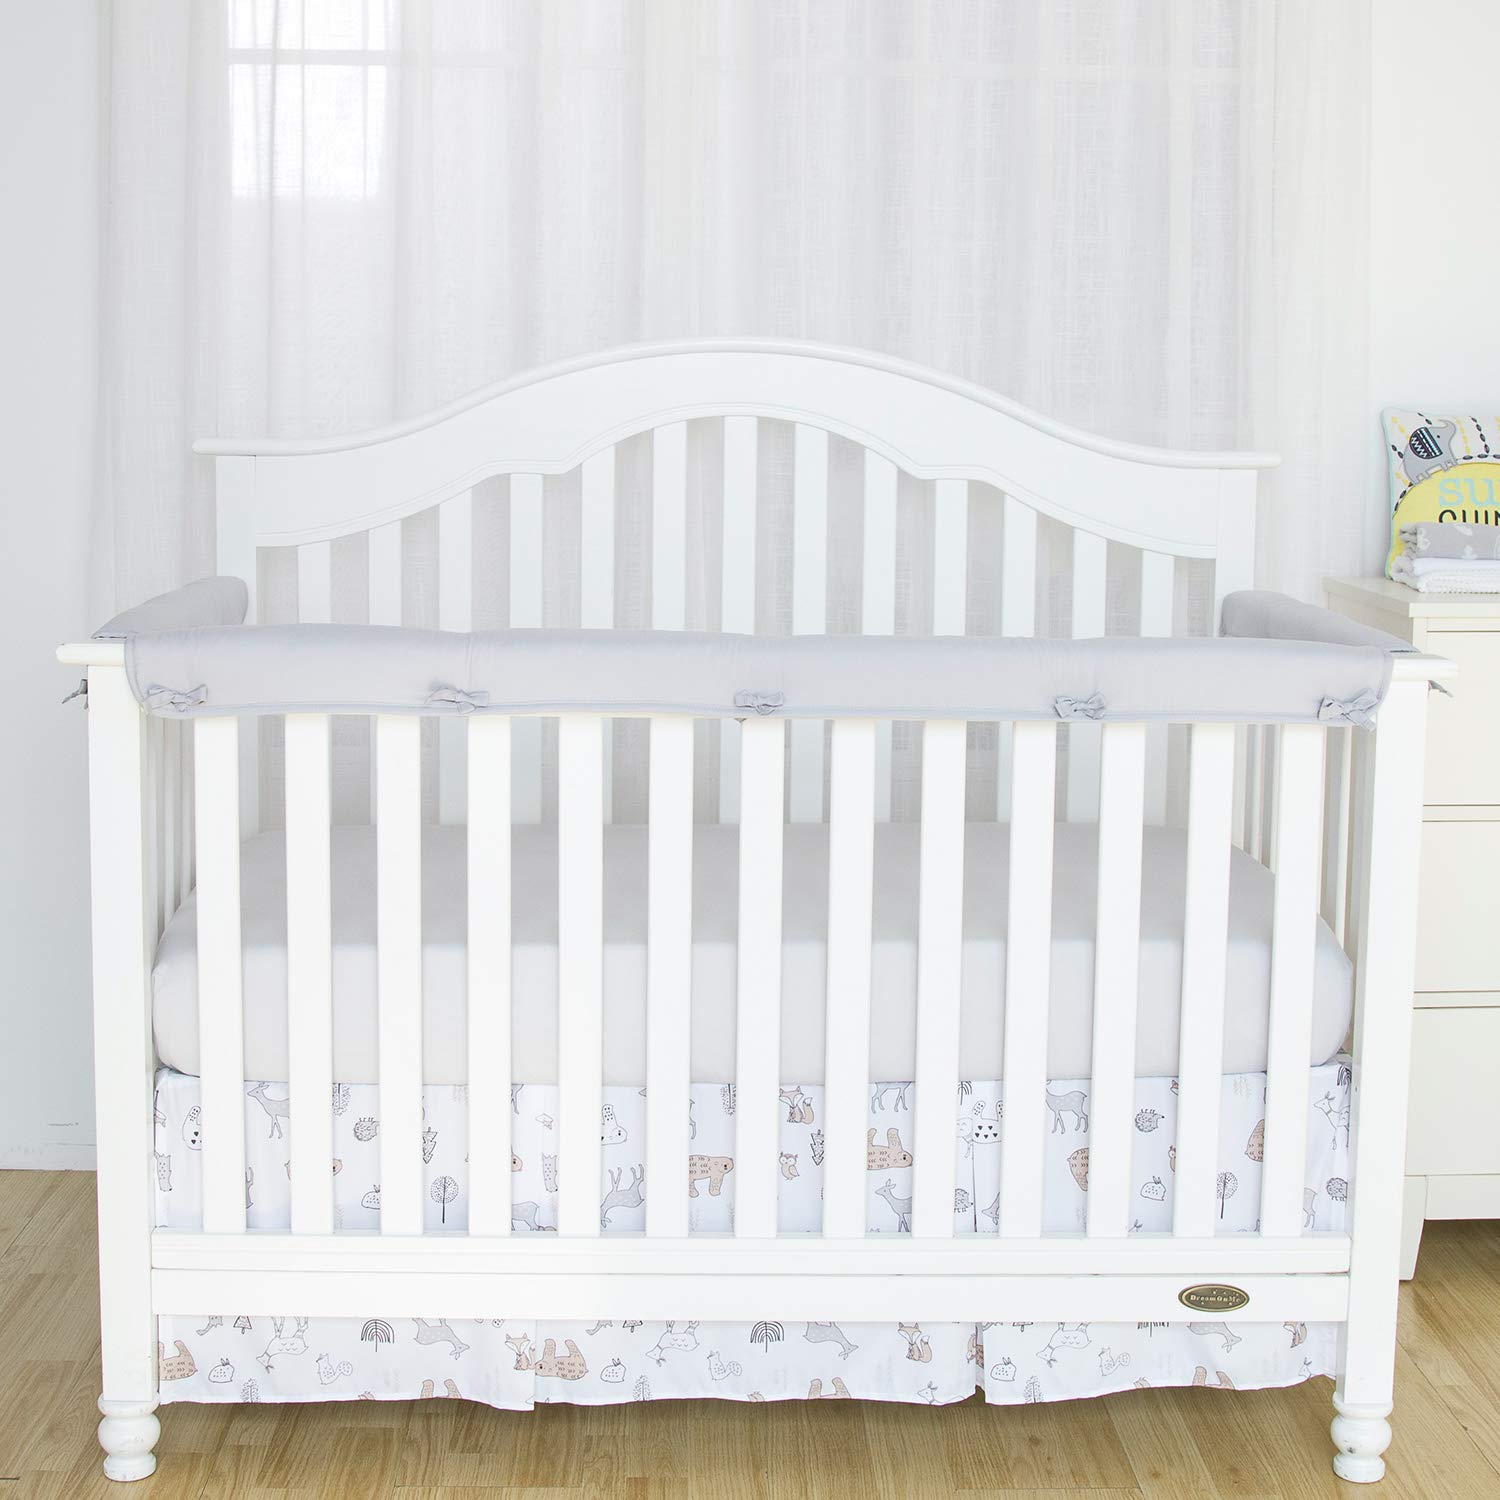 TILLYOU 3-Piece Padded Baby Crib Rail Cover Protector Set from Chewing, Safe Teething Guard Wrap for Standard Cribs, 100% Silky Soft Microfiber Polyester, Fits Side and Front Rails, Pale Gray by TILLYOU